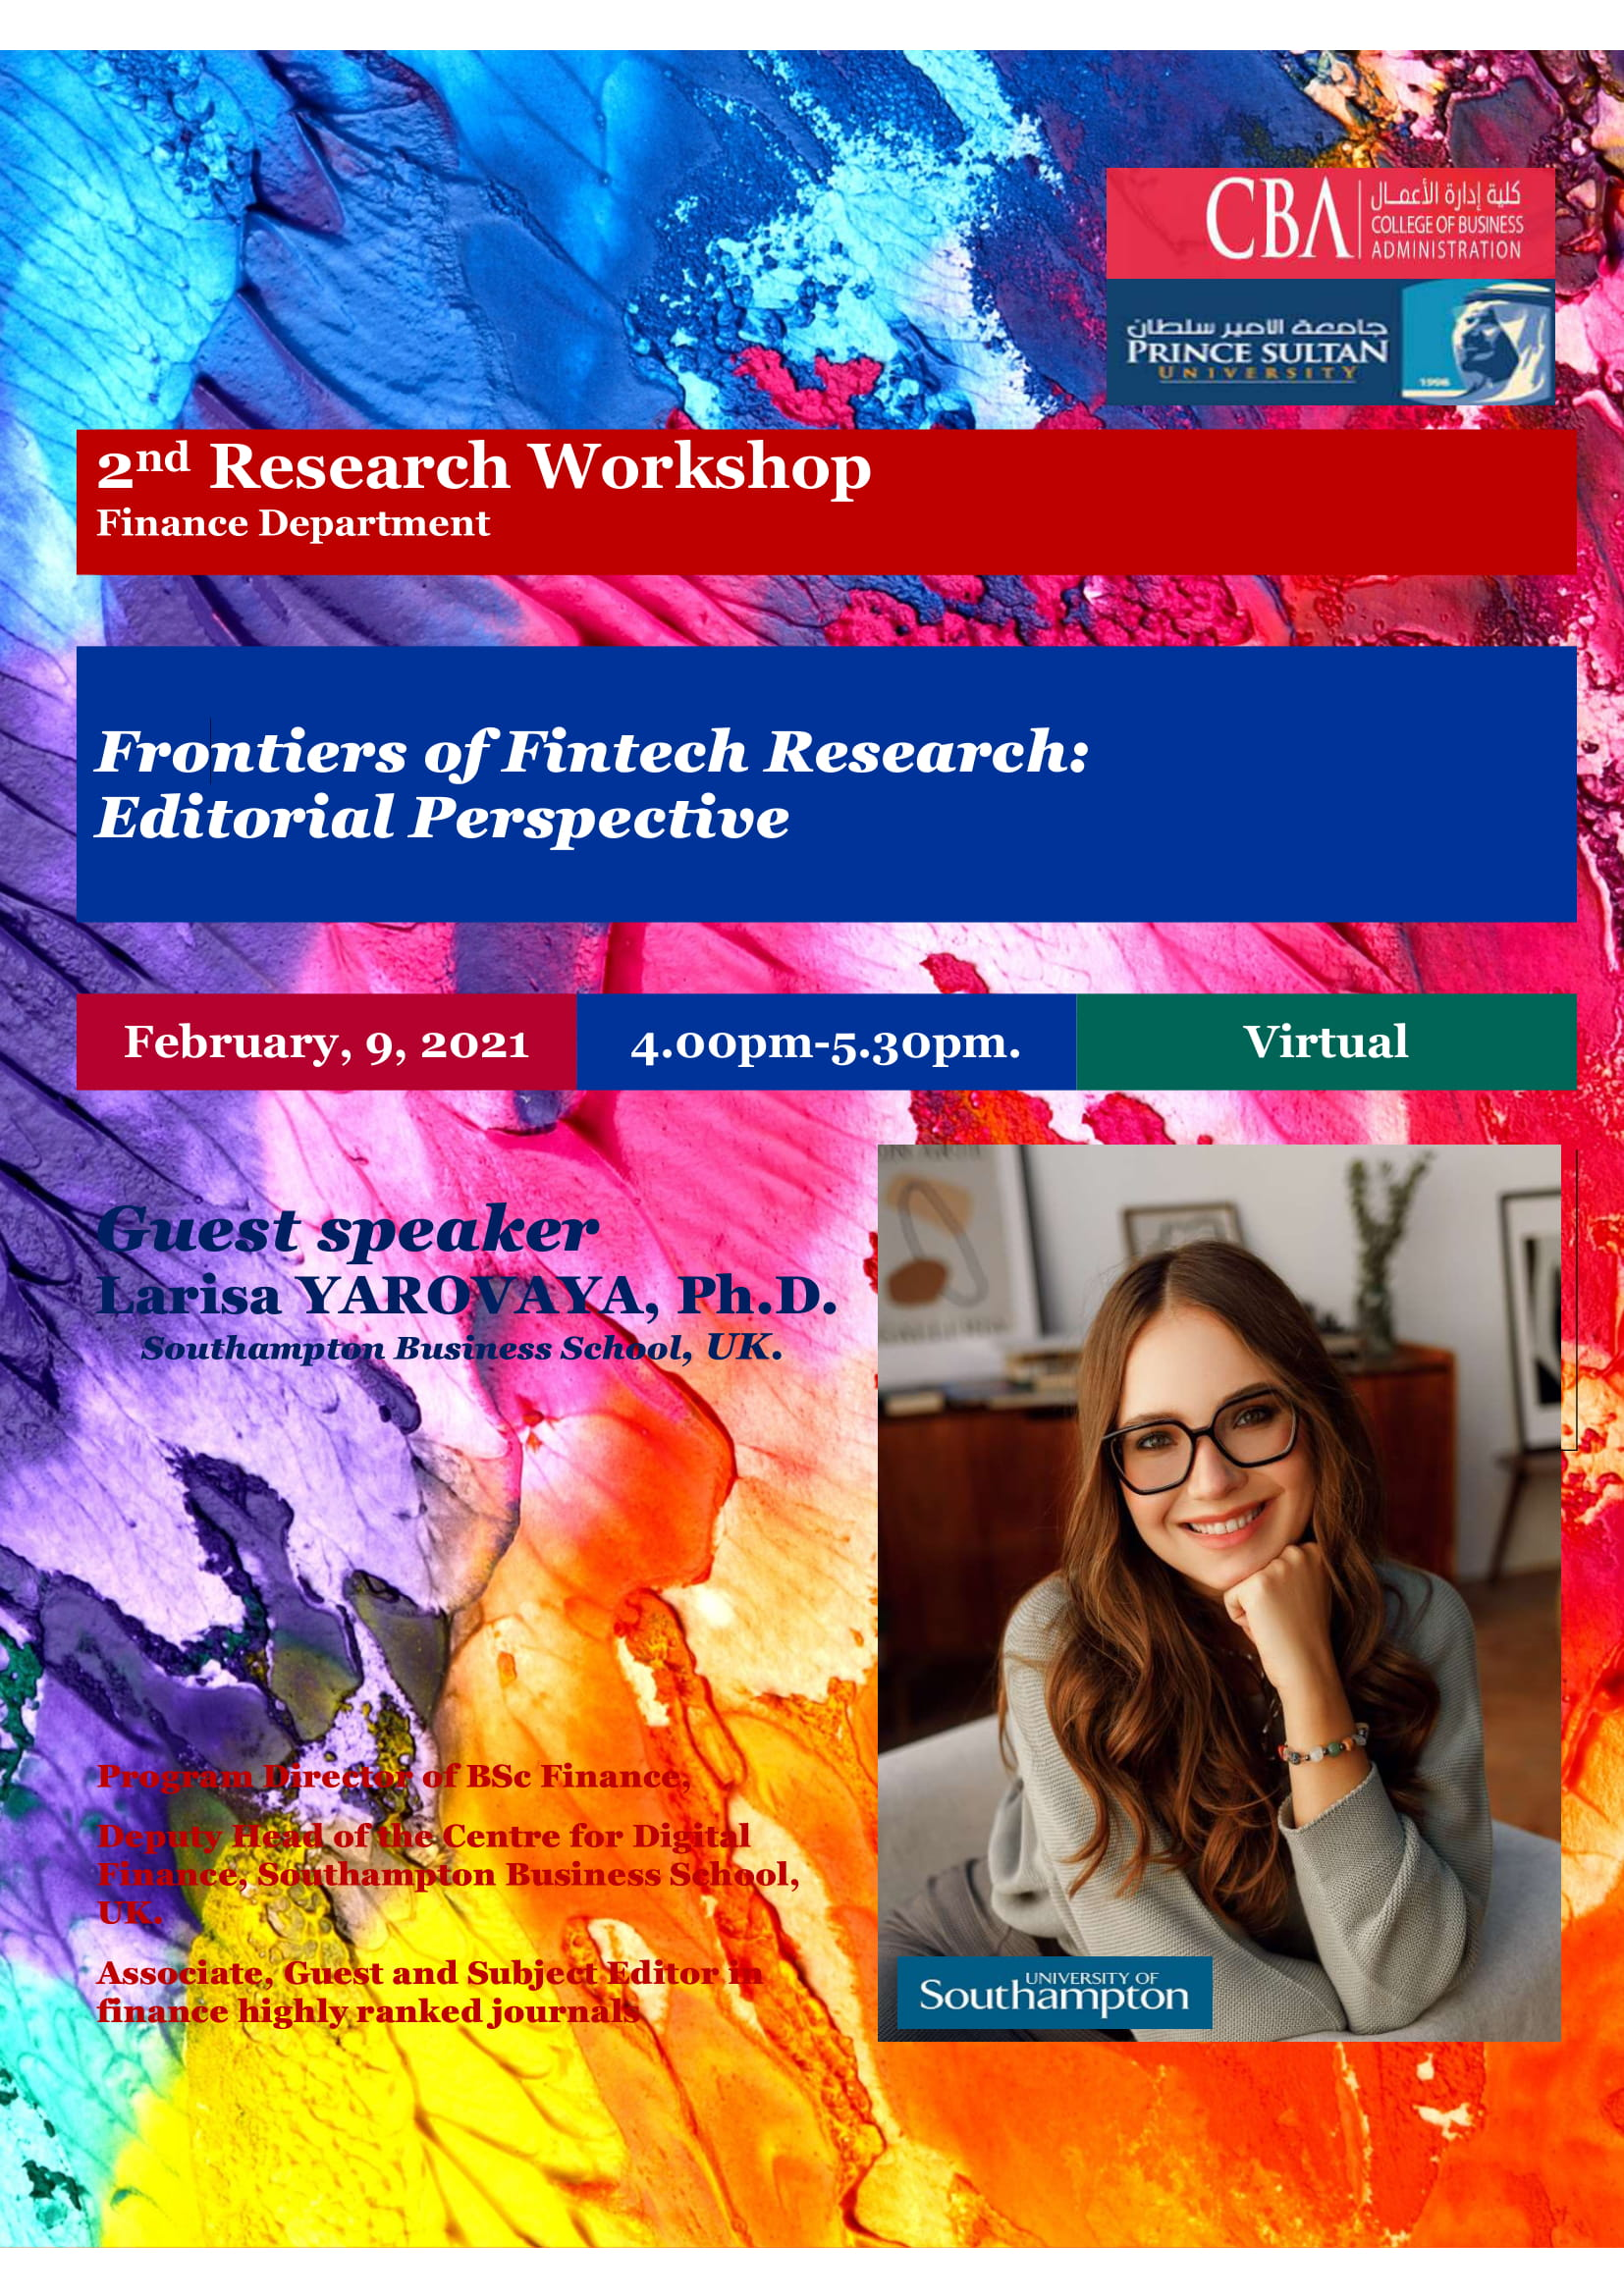 2nd Finance Research Workshop